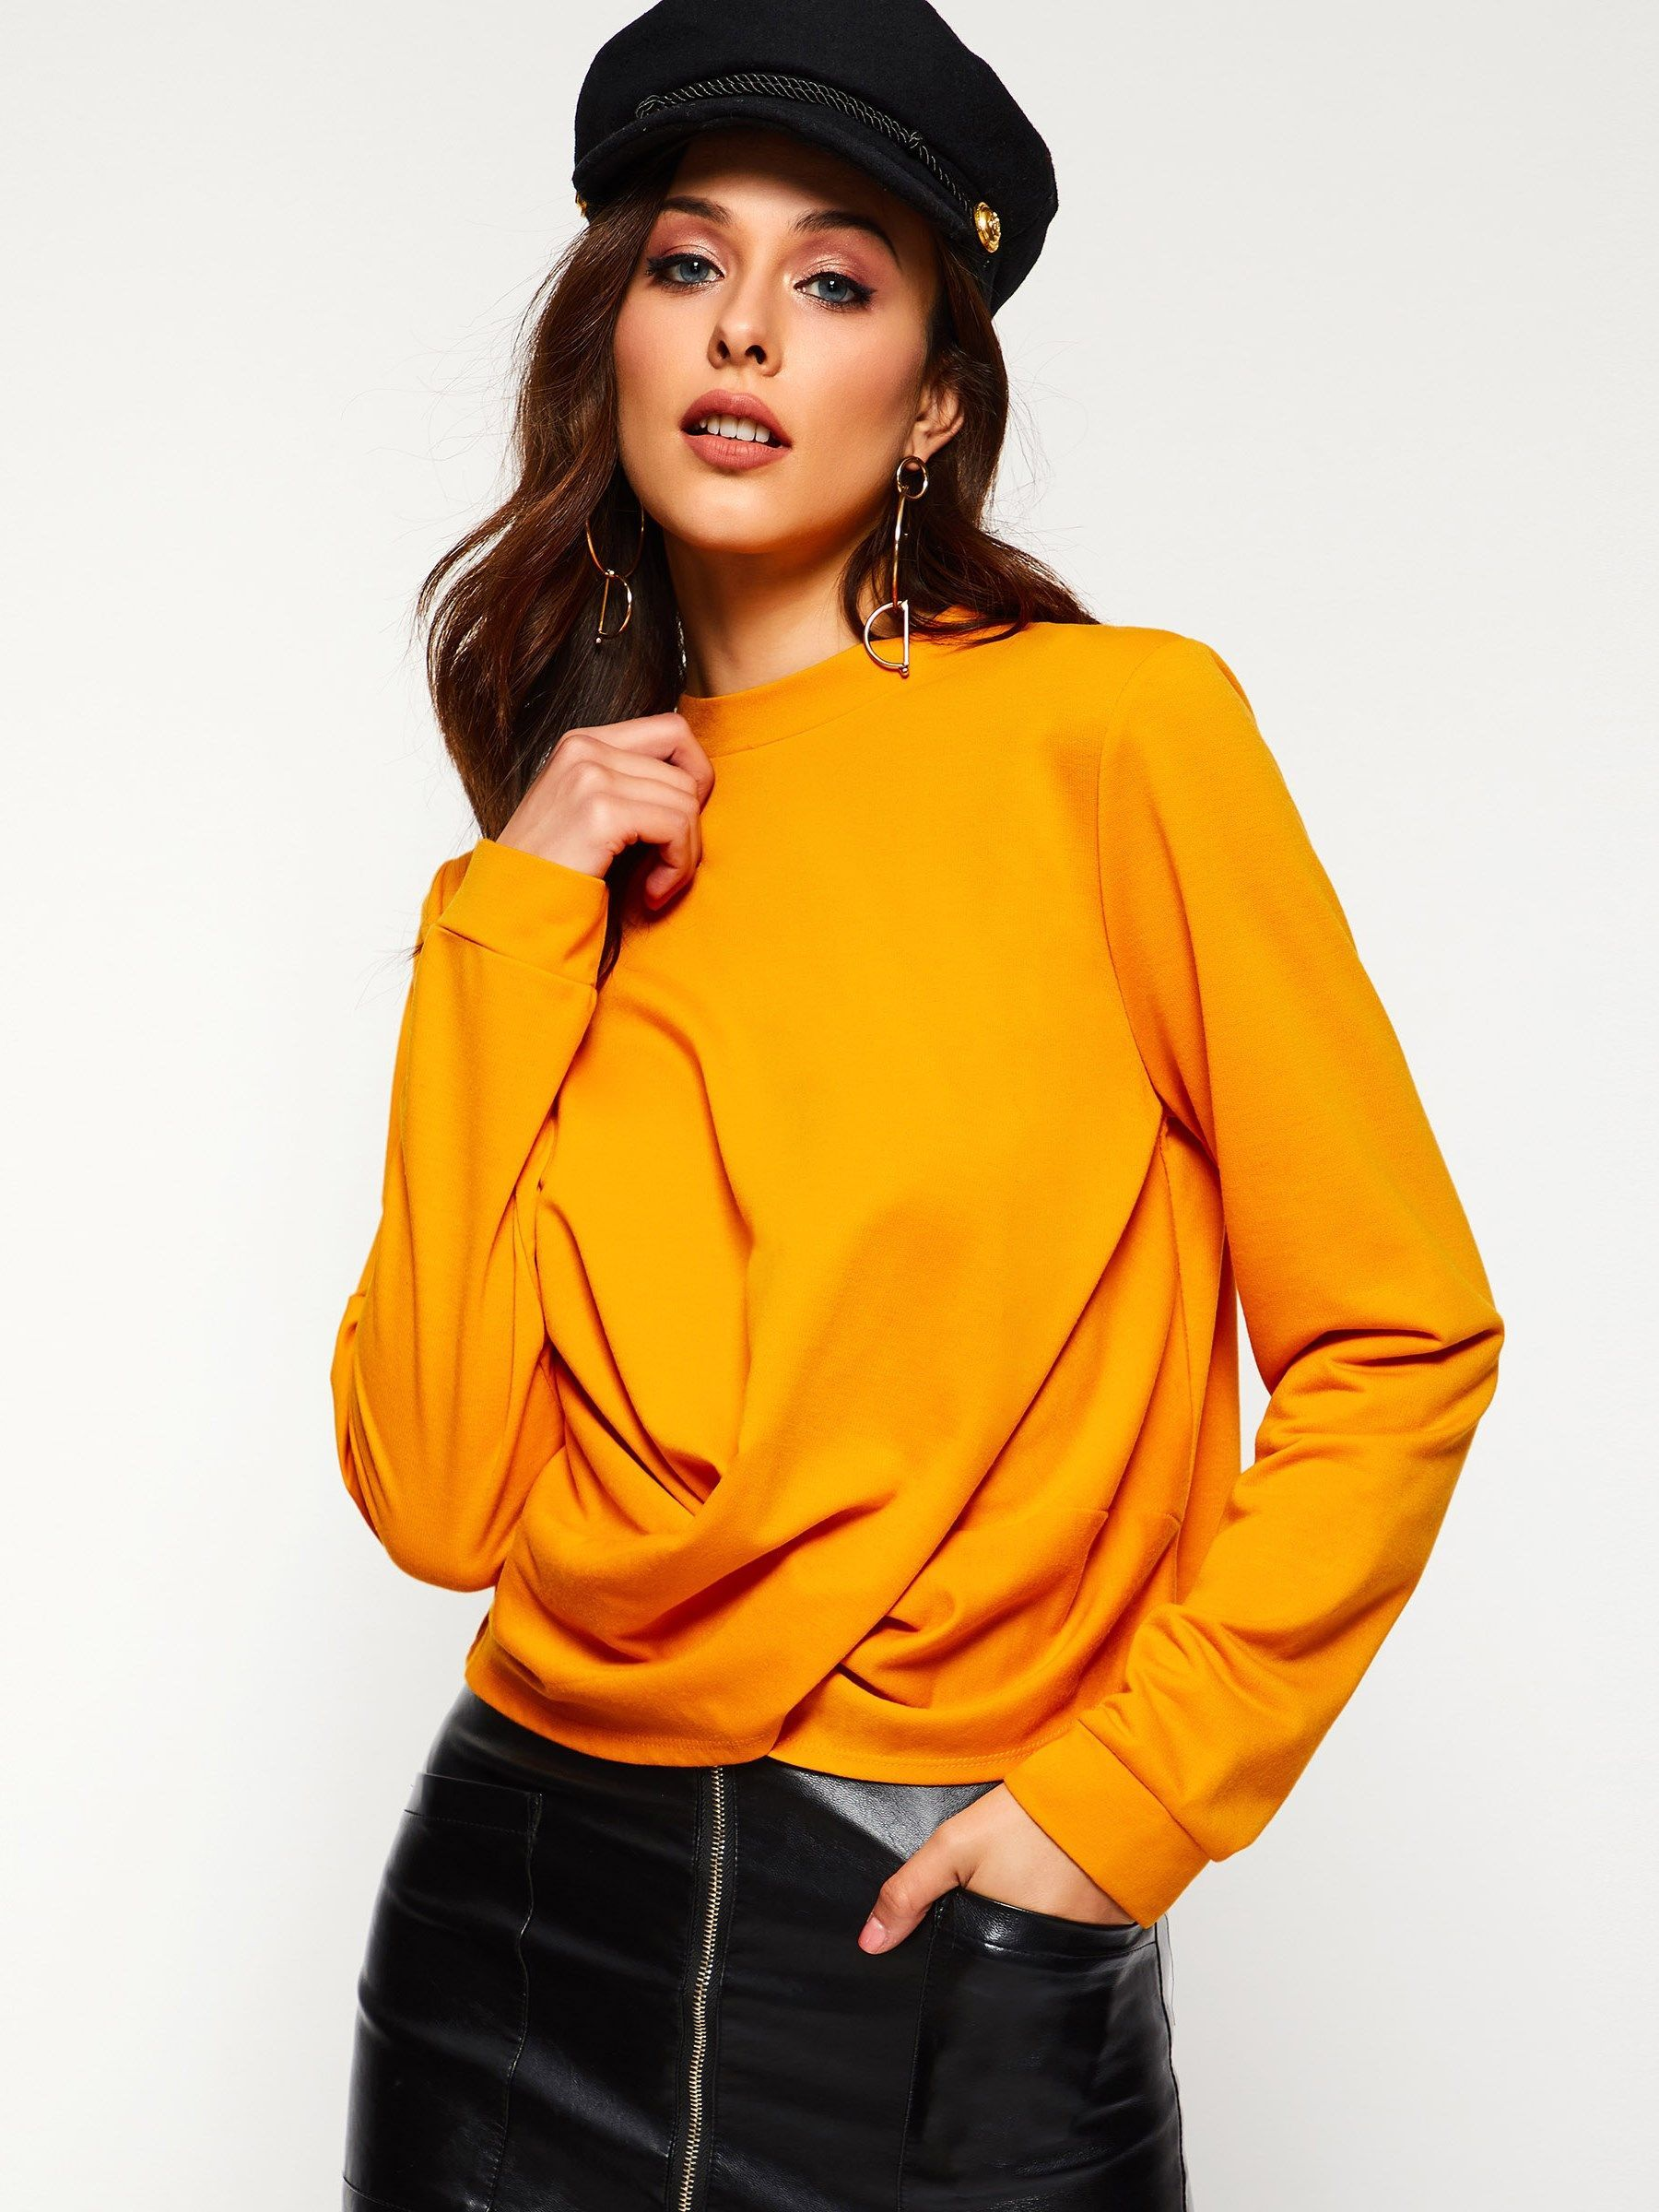 82 Of The Most Creative T Shirt Designs Ever: Long Sleeve Plain Round Neck Women's T-Shirt (With Images